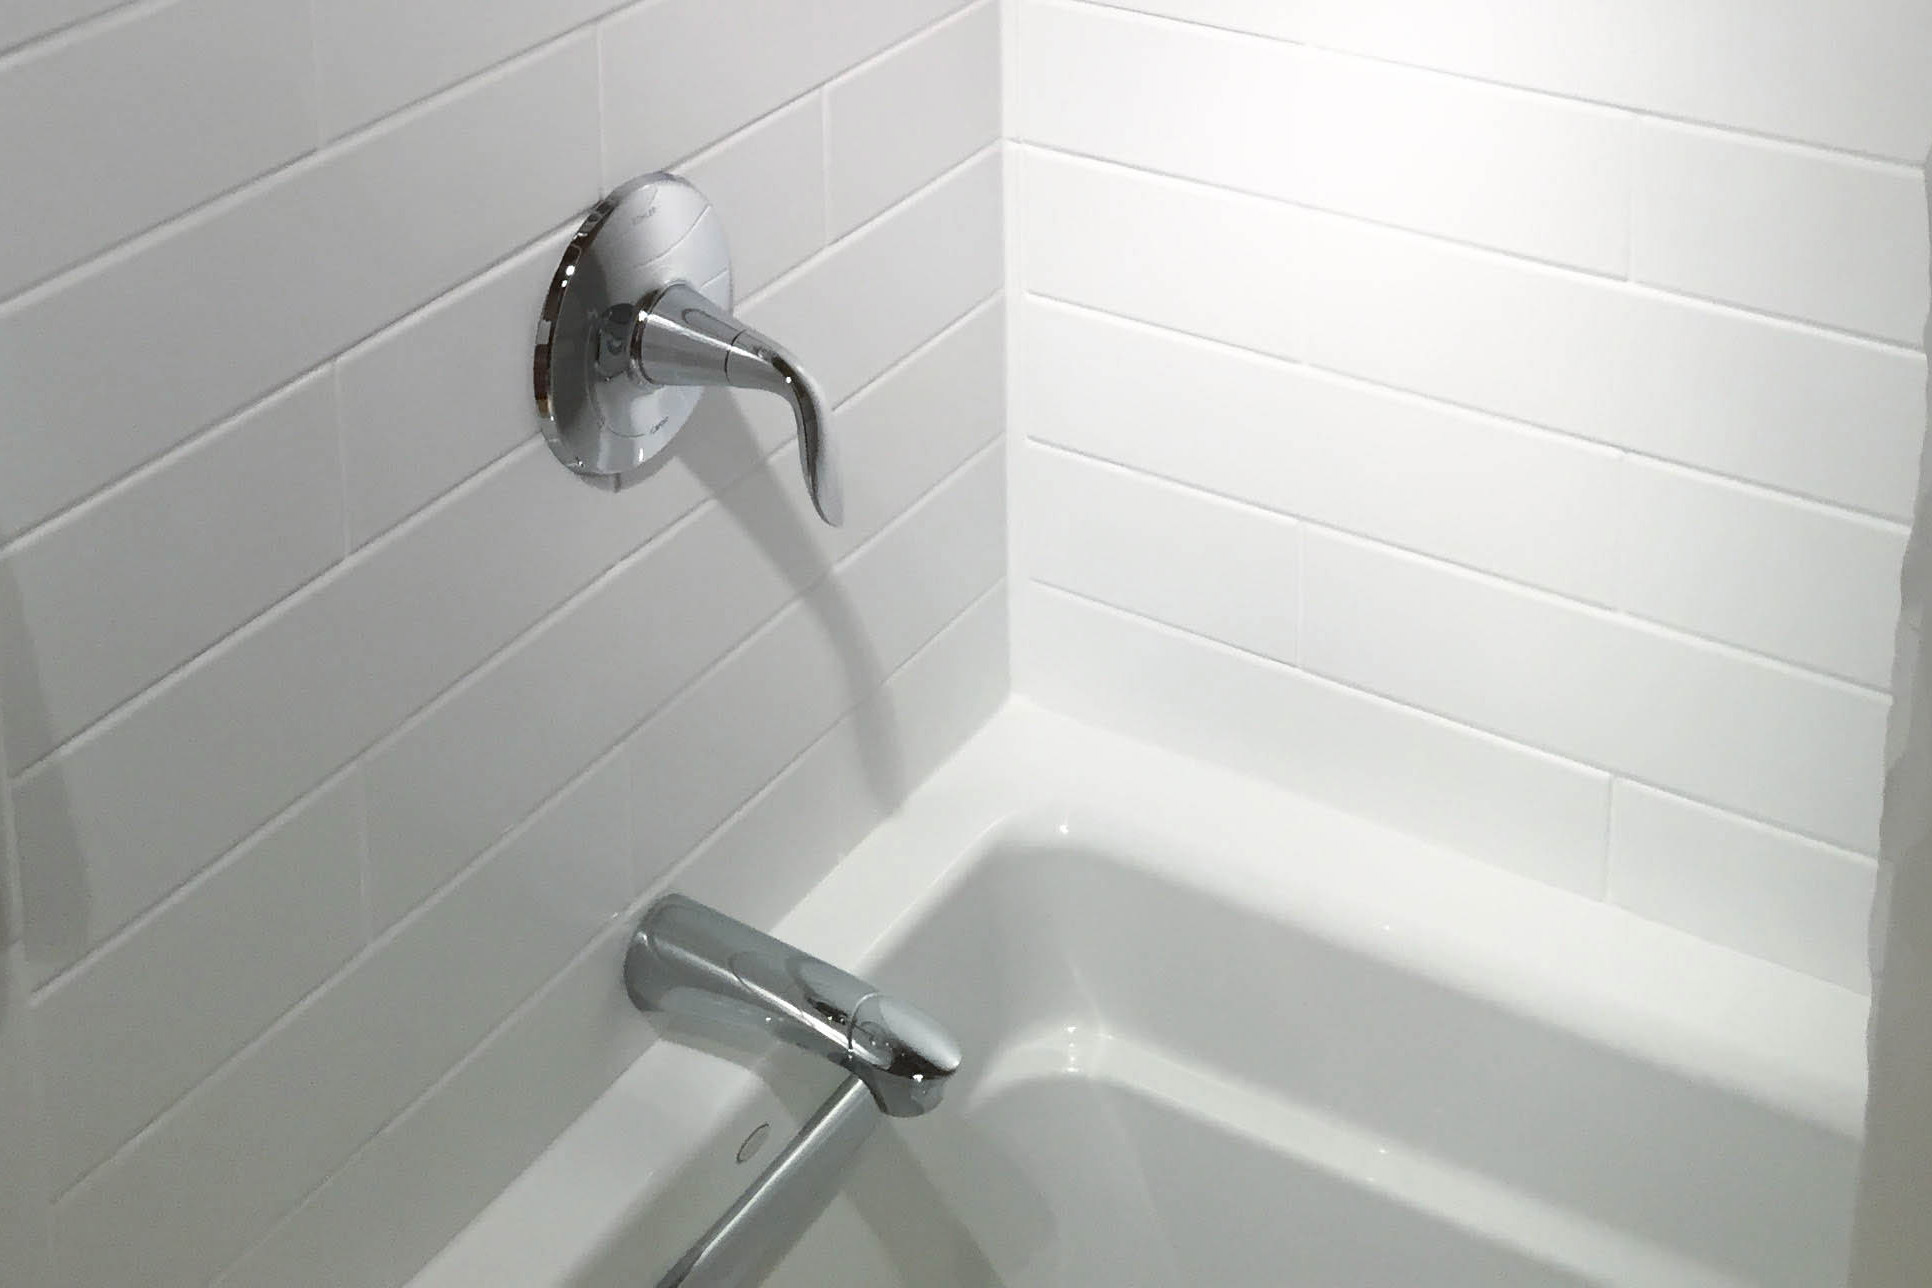 How to Choose a Proper Tile Grout